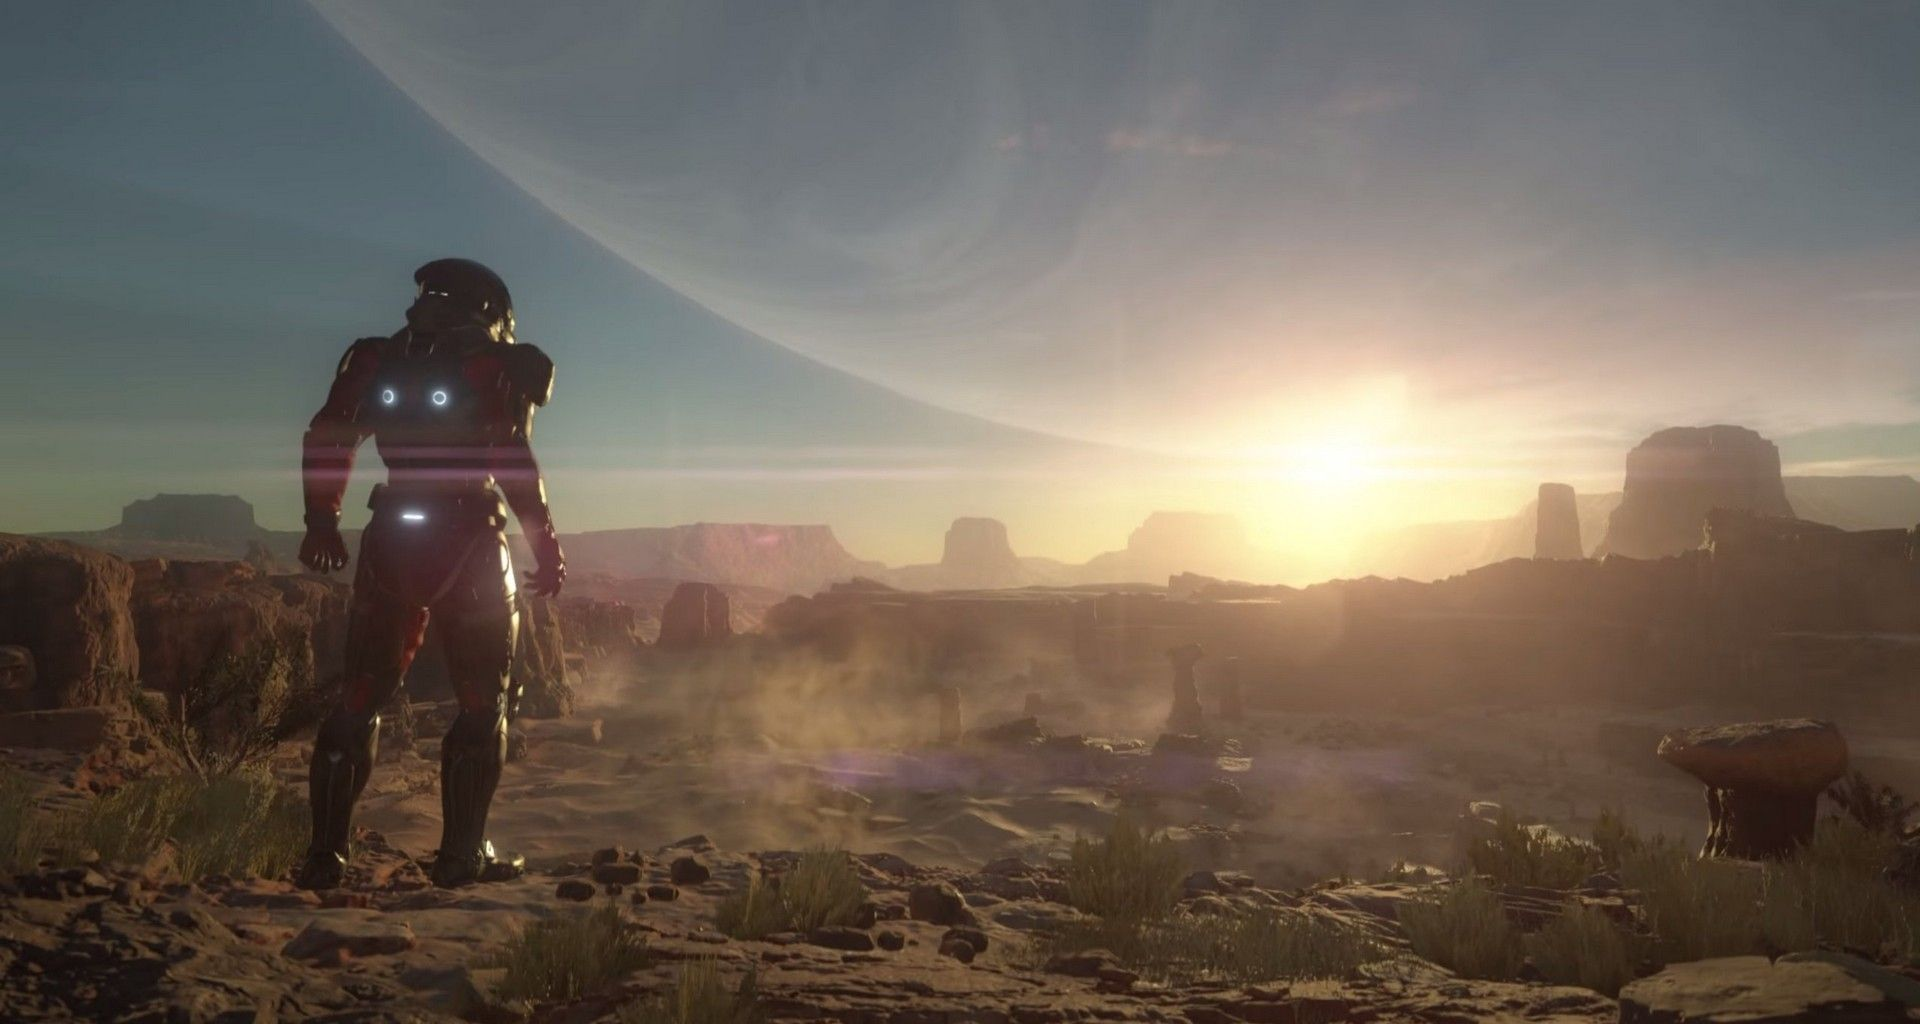 Mass Effect Andromeda Wallpapers Best Mass Effect Andromeda